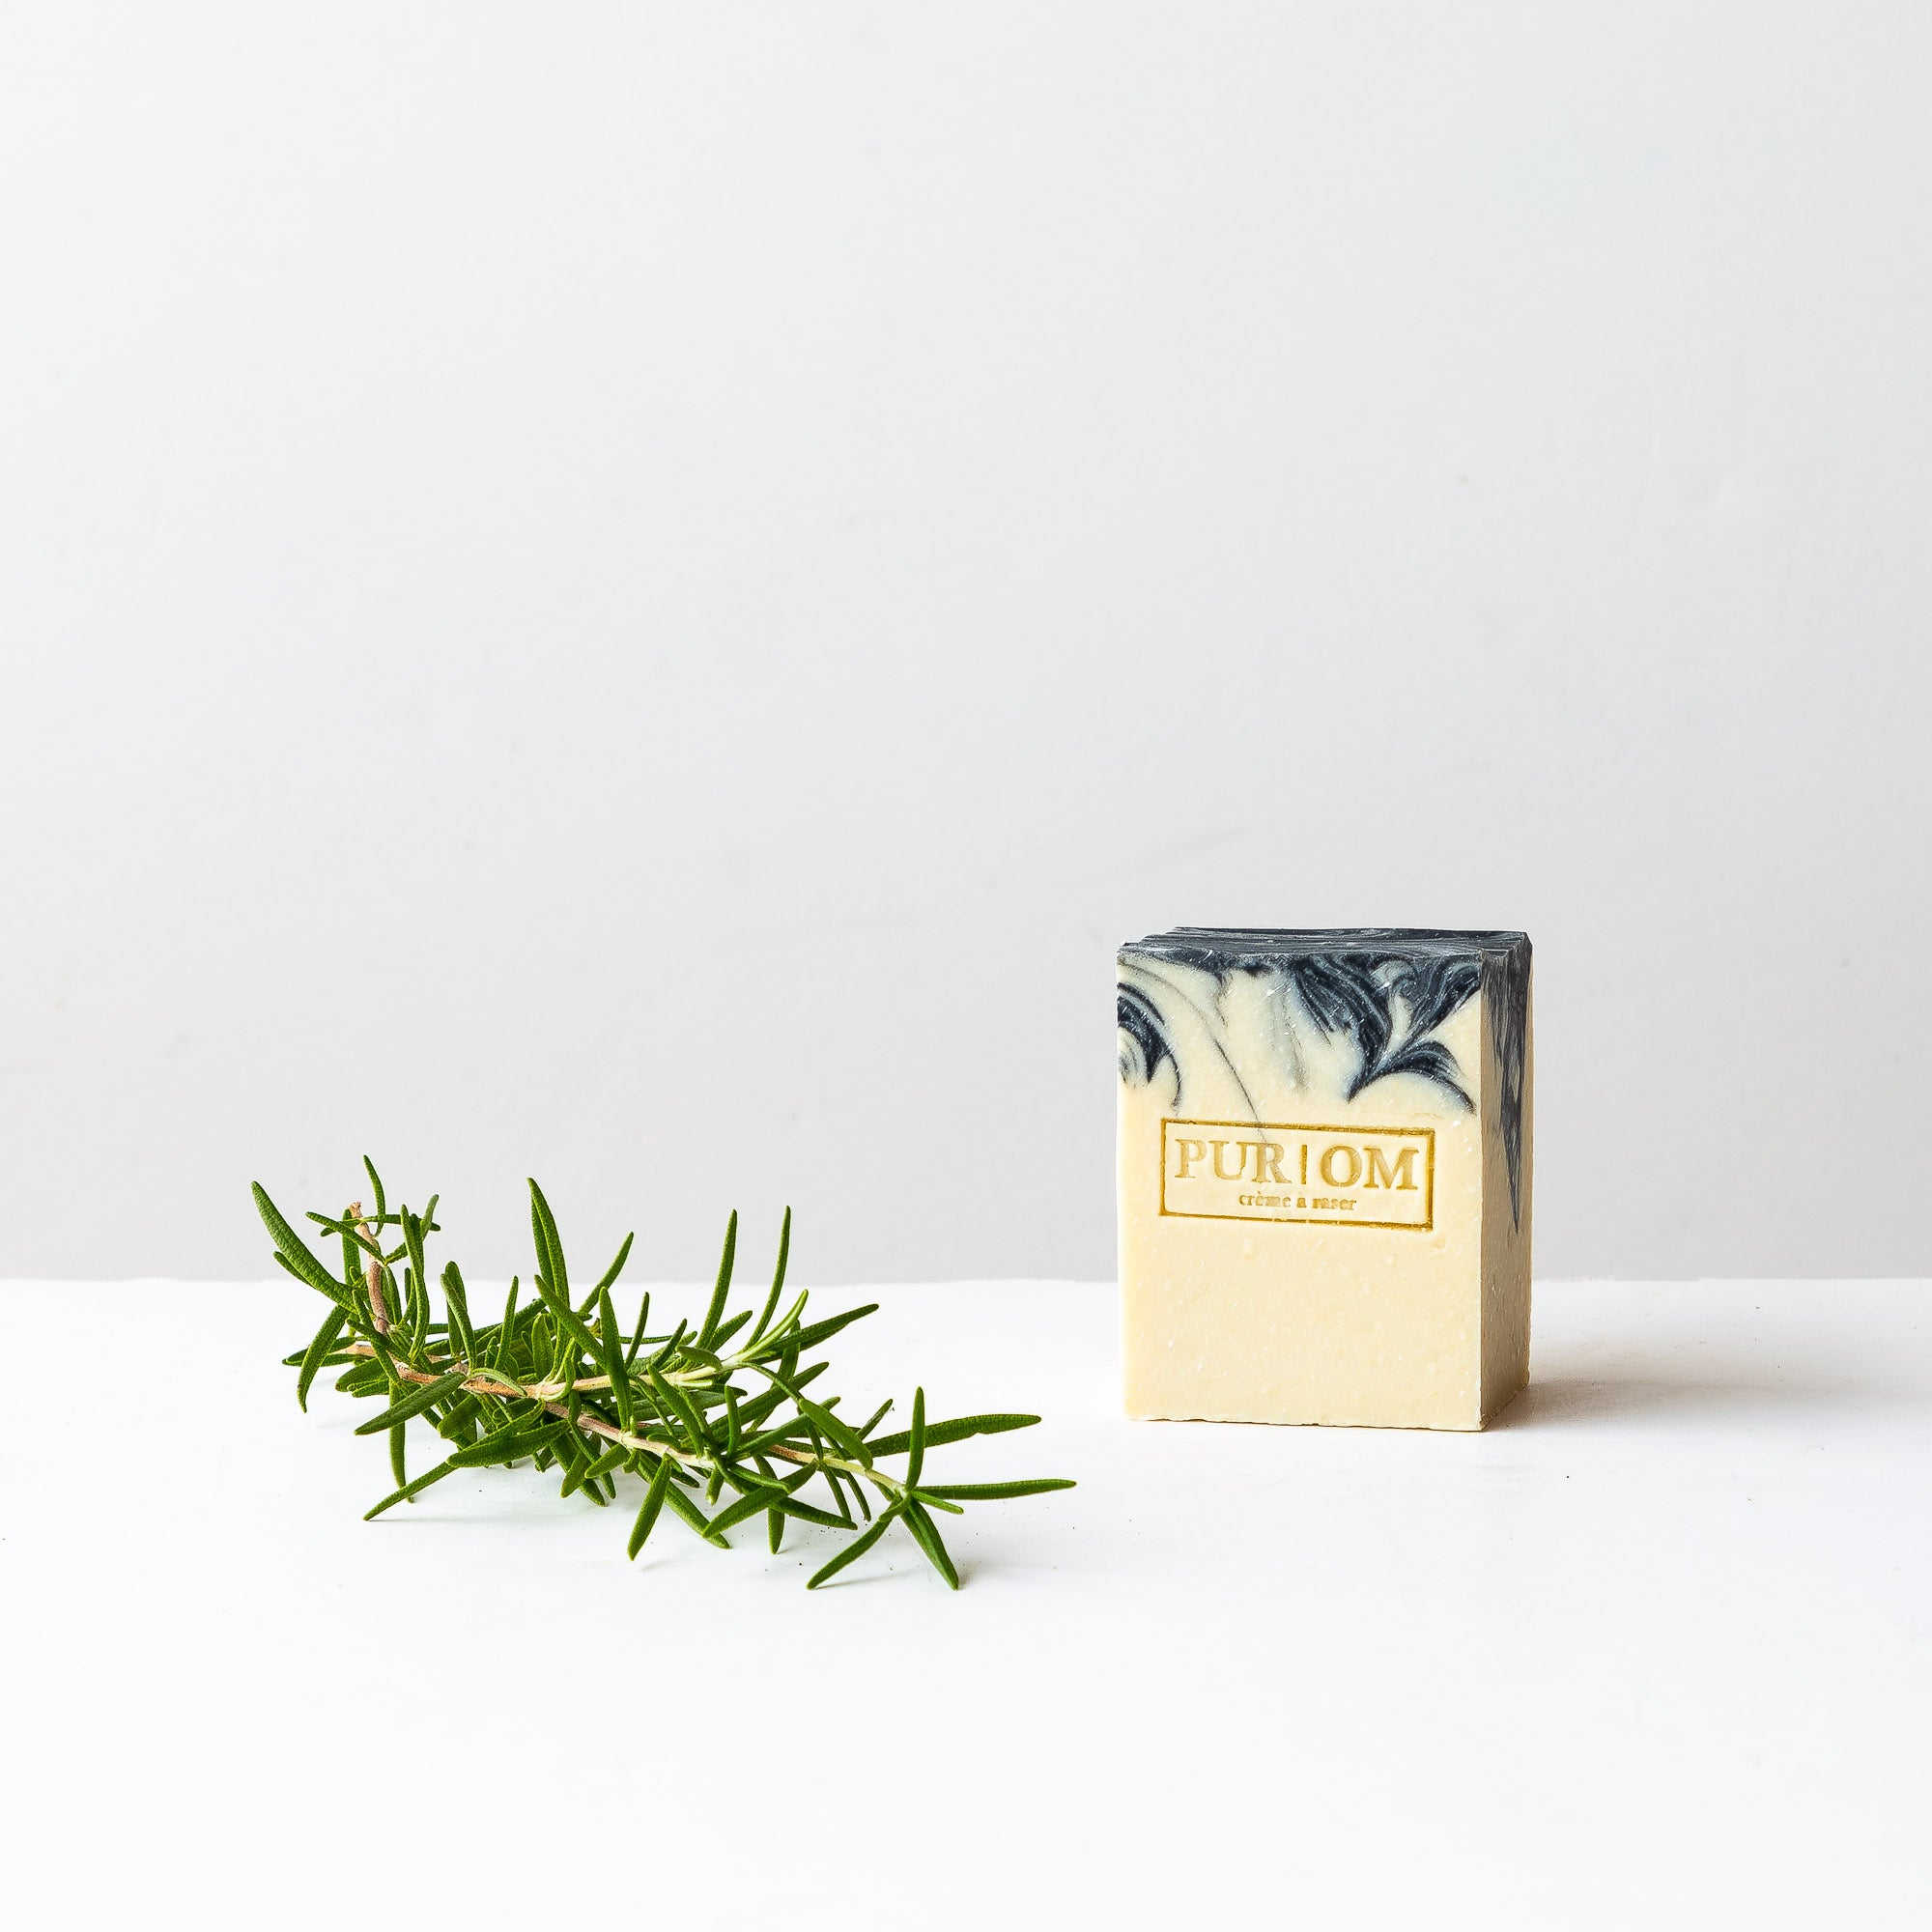 Shown with a Rosemary Branch - Rosemary + Bergamot - Shaving Soap Bar - Sold by Chic & Basta